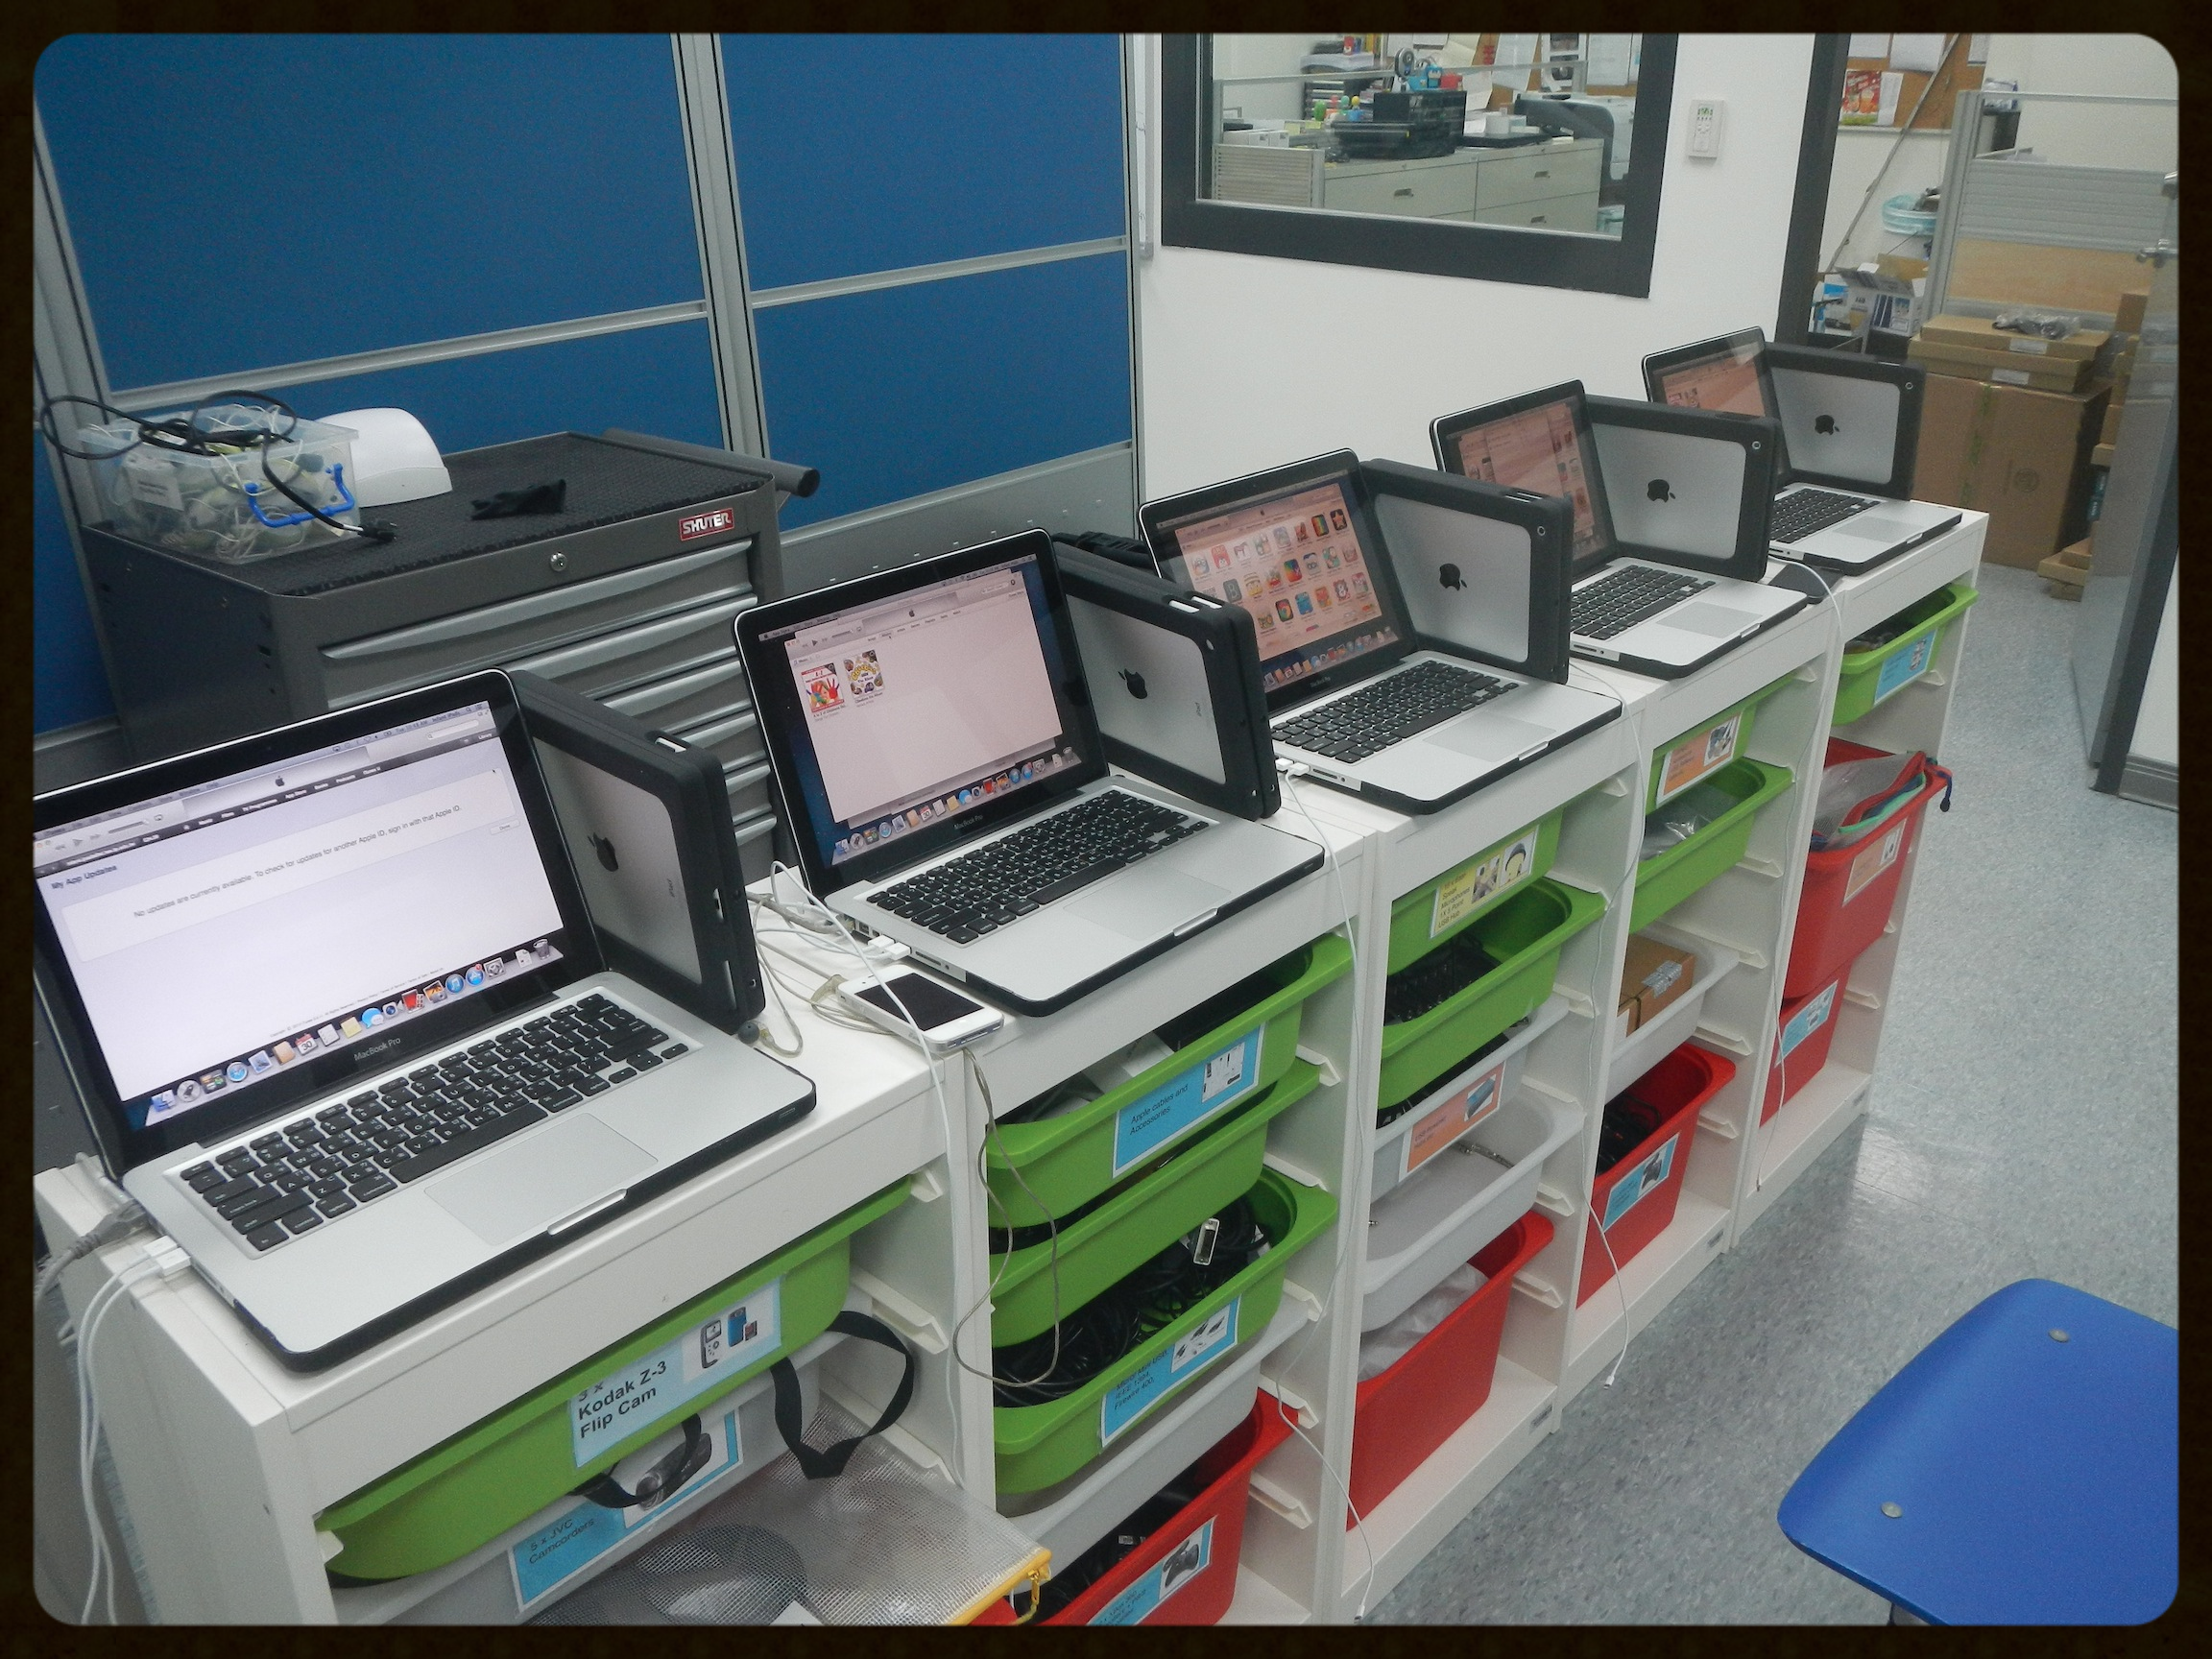 Configuring Multiple Devices for Teachers 006.JPG